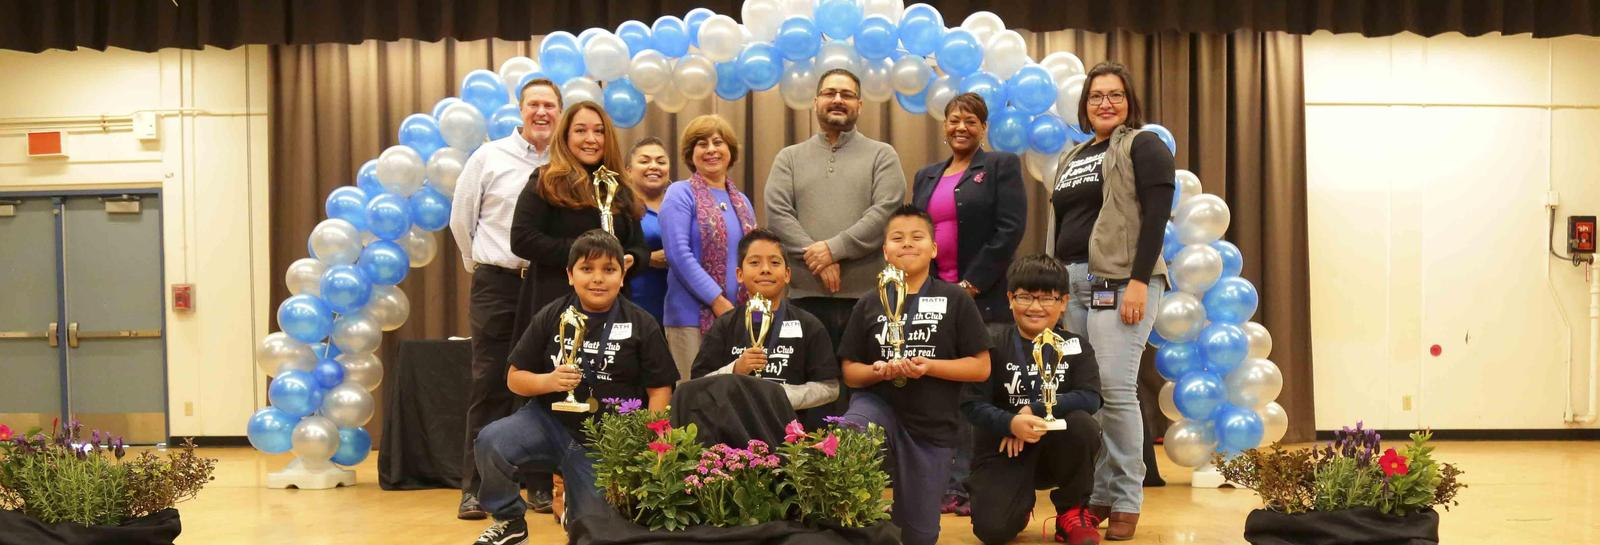 Cortez 8th Grade students take 2nd Place at the Math Field Day - Congratulations to all of our Wizards that won 2nd Place at the Math Field Day held at Garey High School. We are proud of your academic success! #proud2bepusd http://edl.io/n1149217